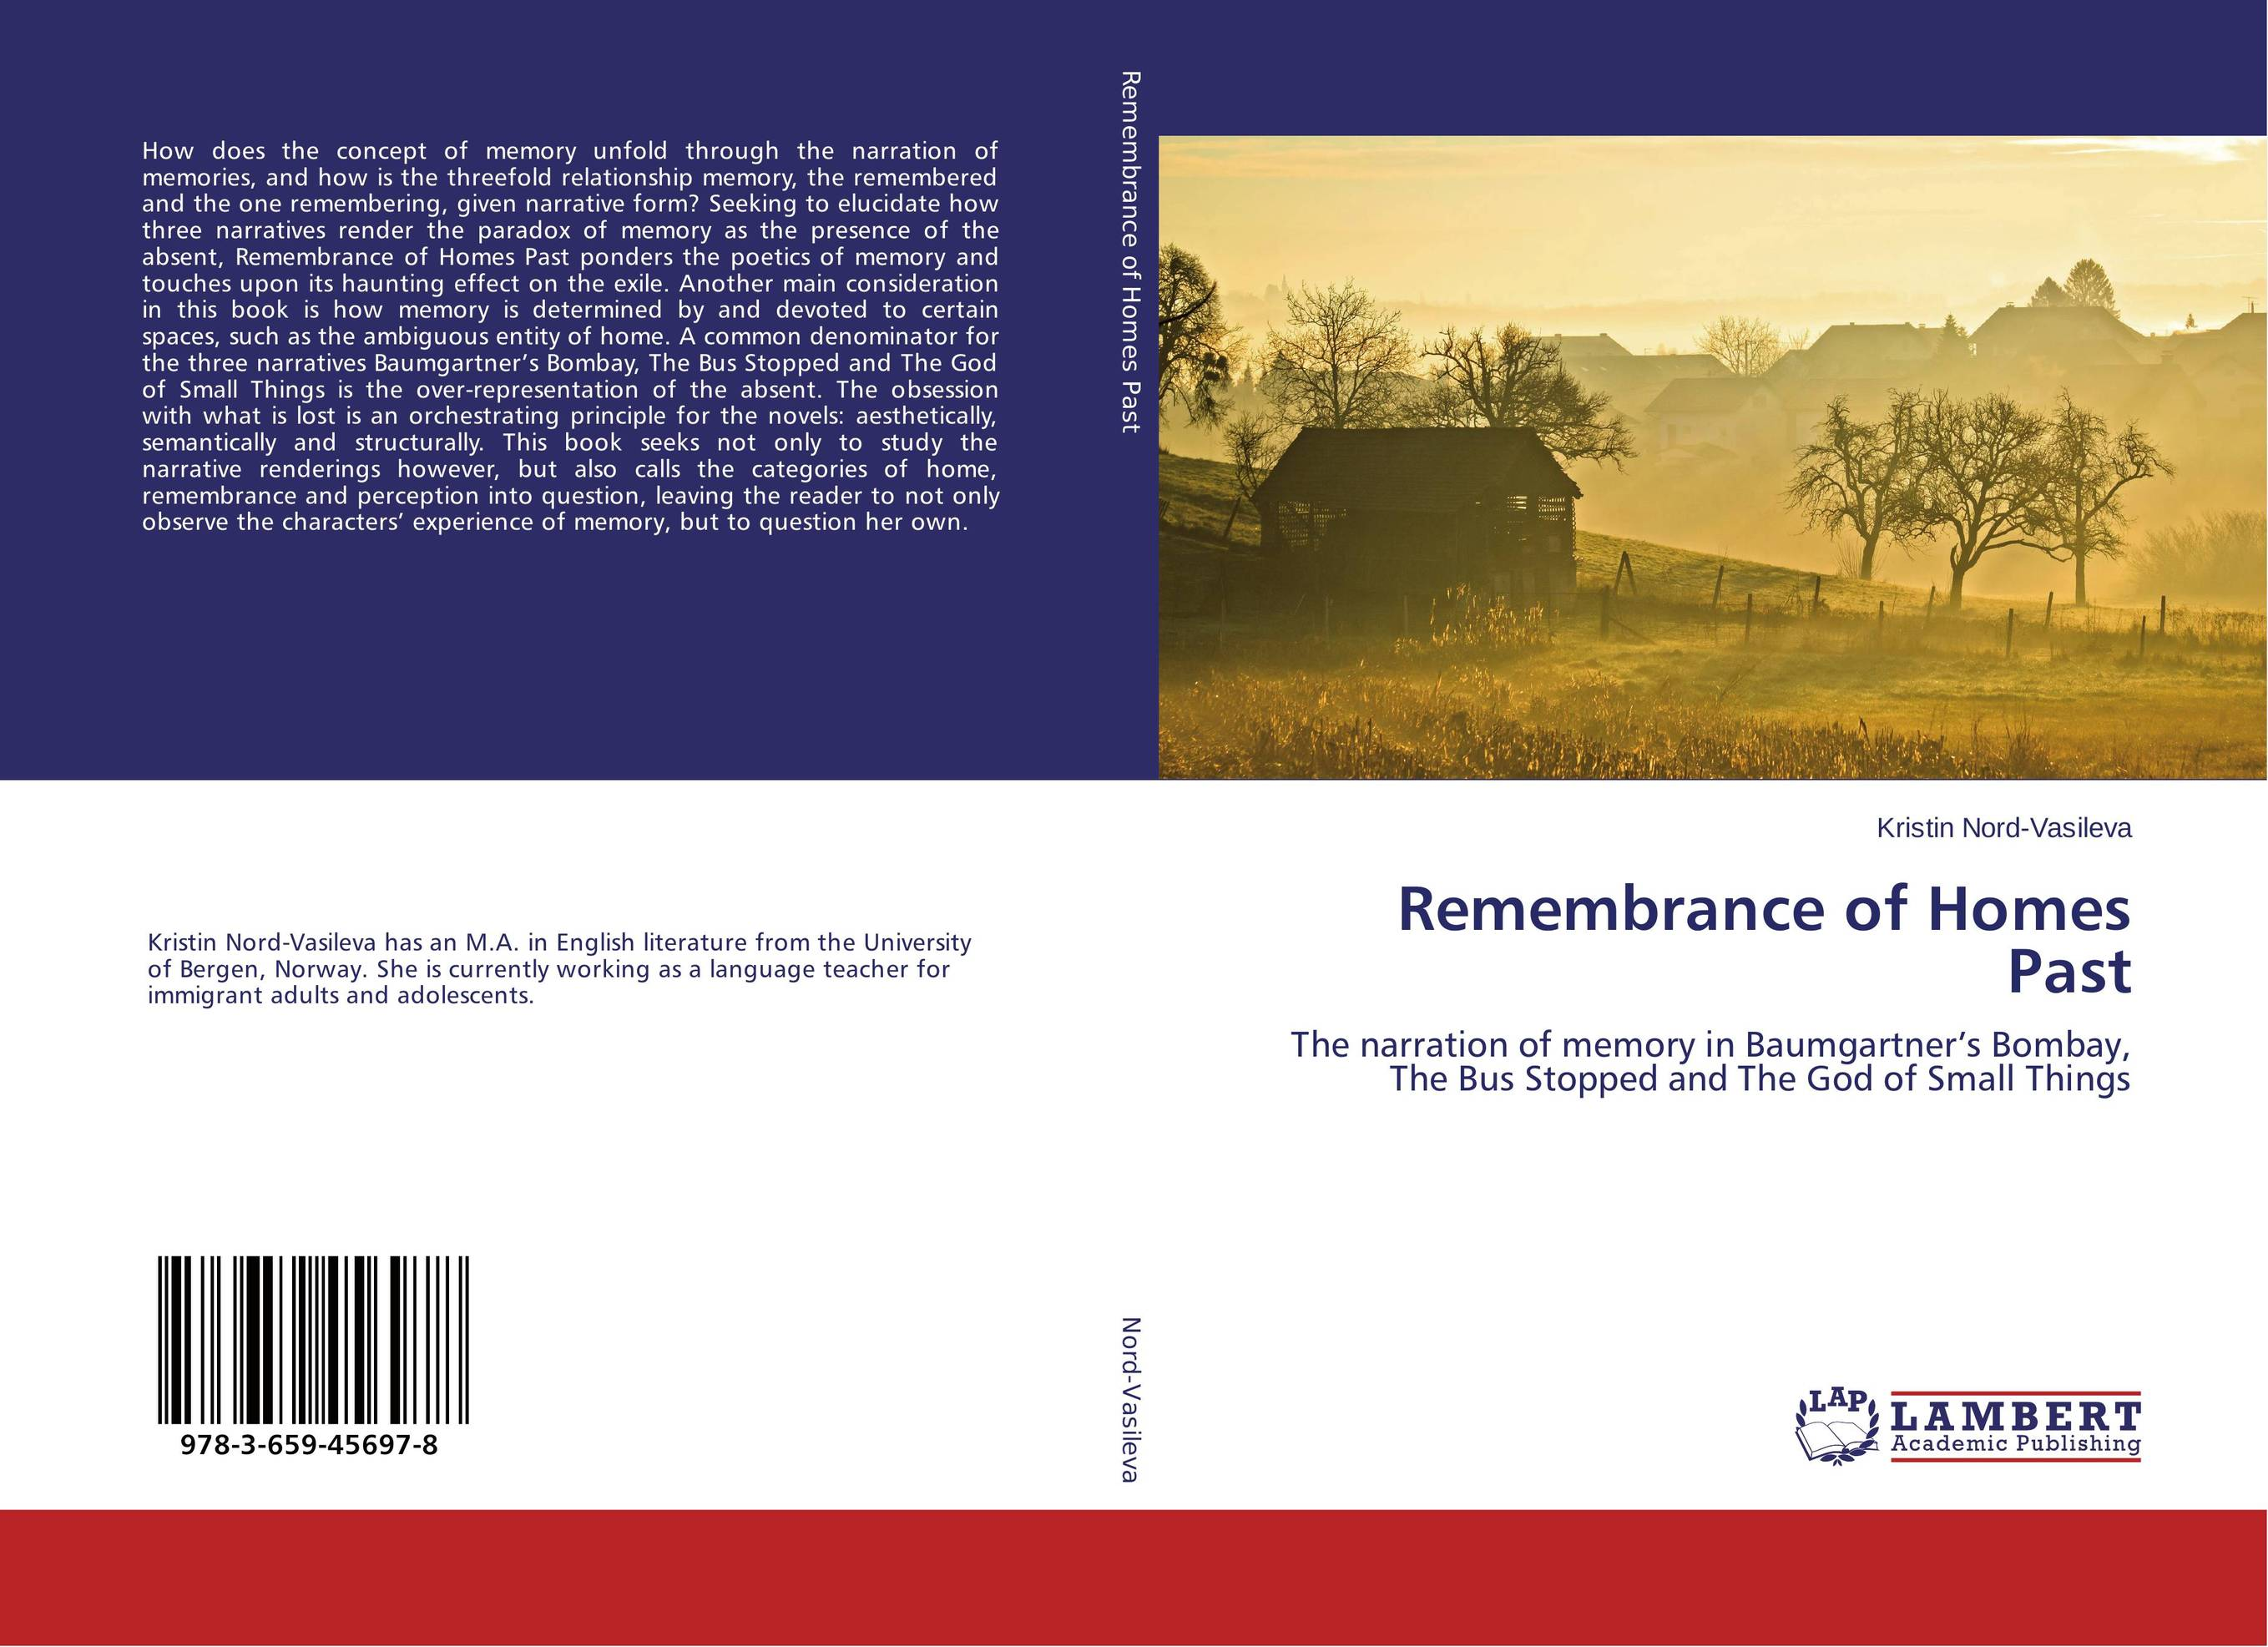 Remembrance of Homes Past the book of memory